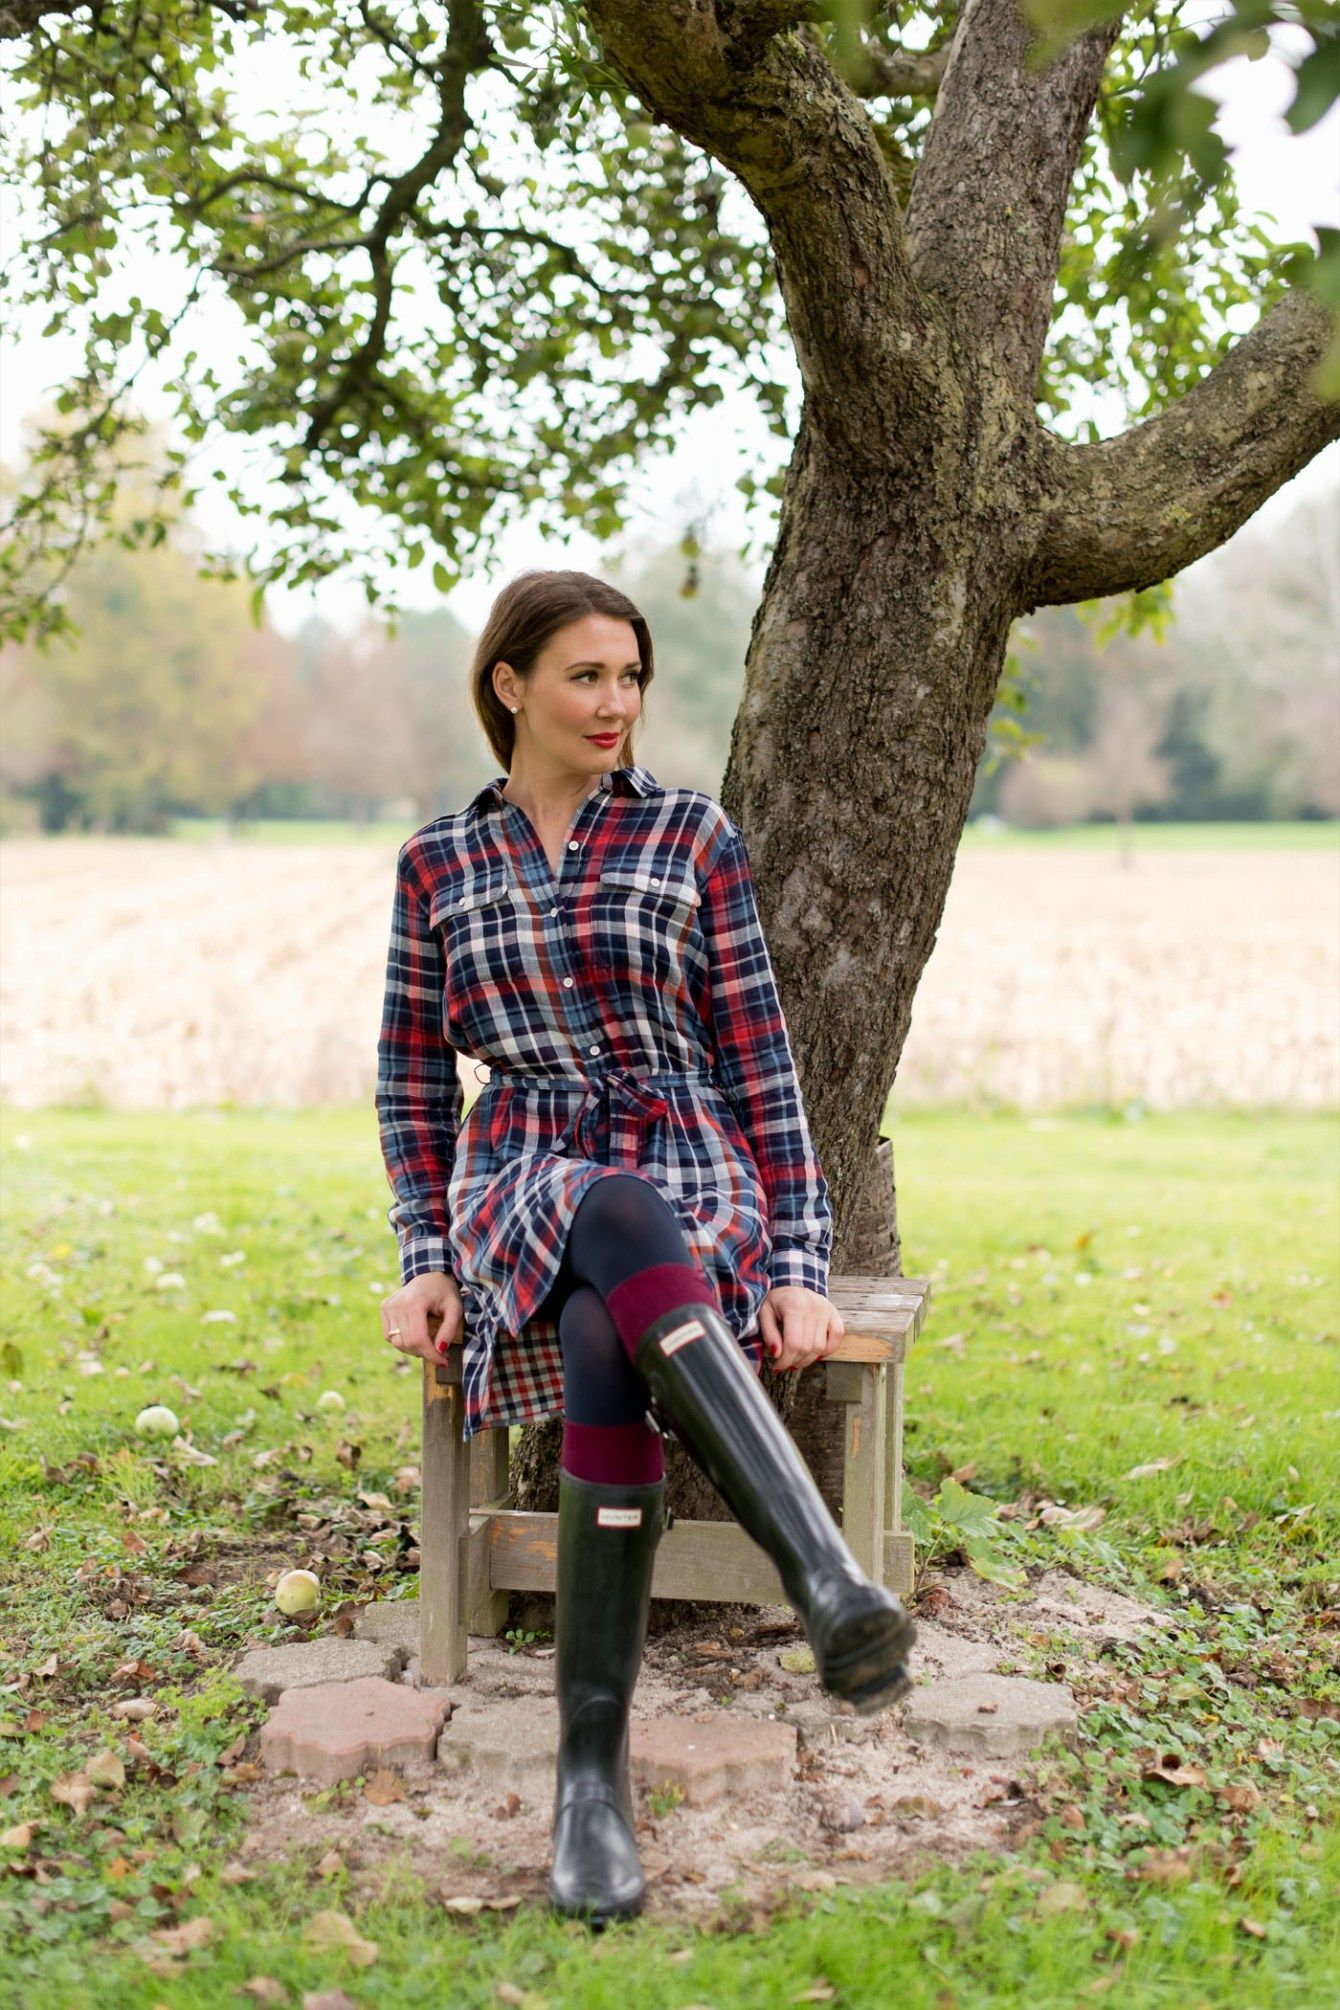 gap-karo-kleid-dress-hunter-stiefel-boots-gummistiefel-